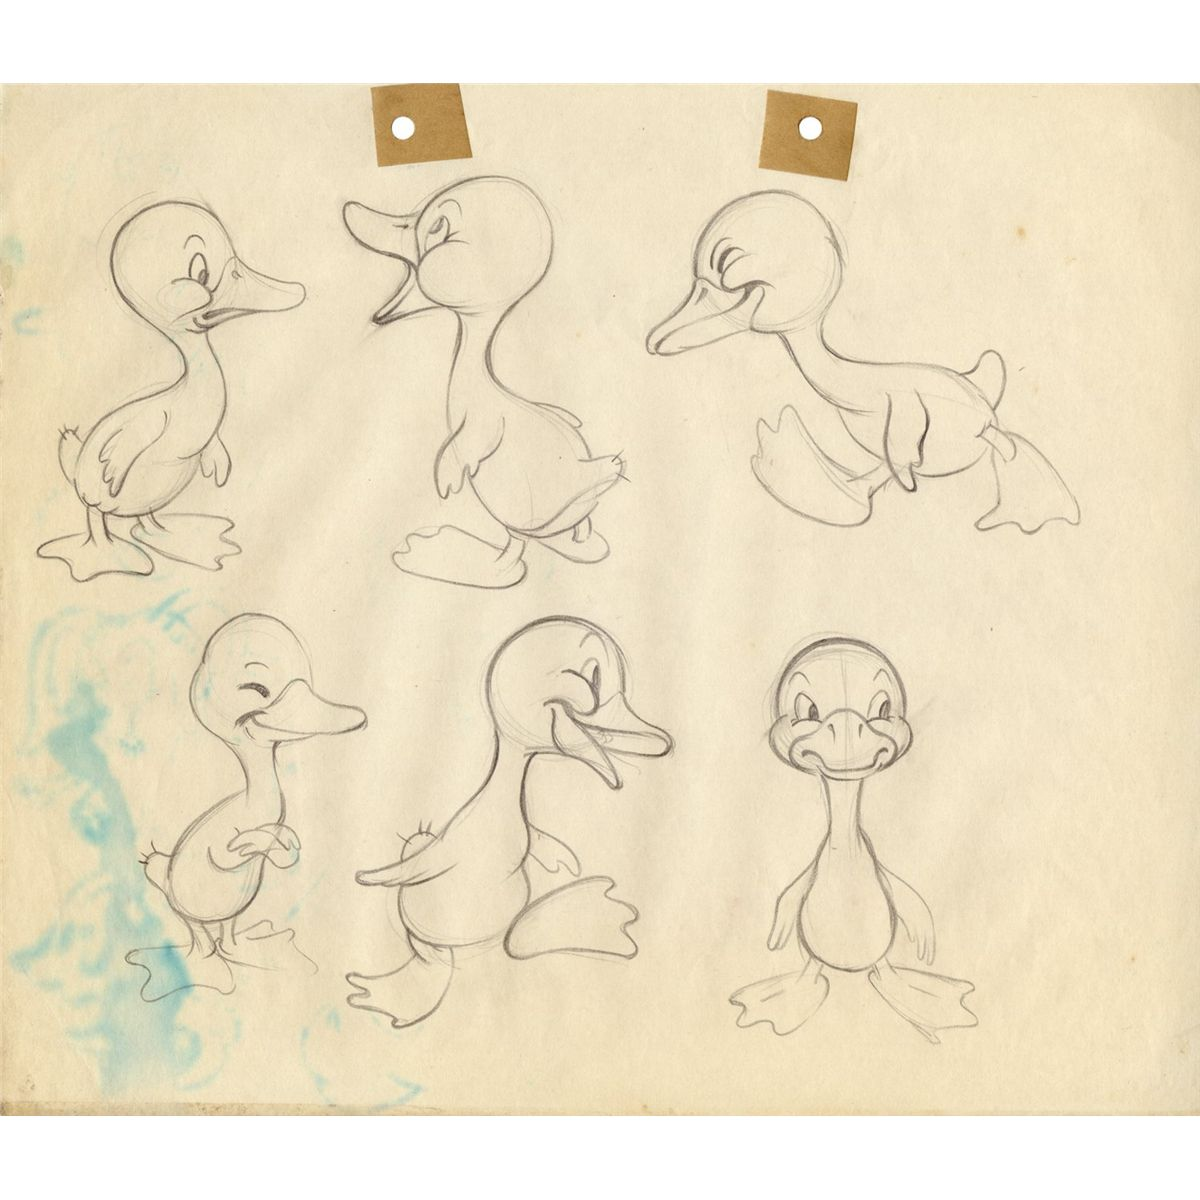 pair of original model drawings from the ugly duckling from the